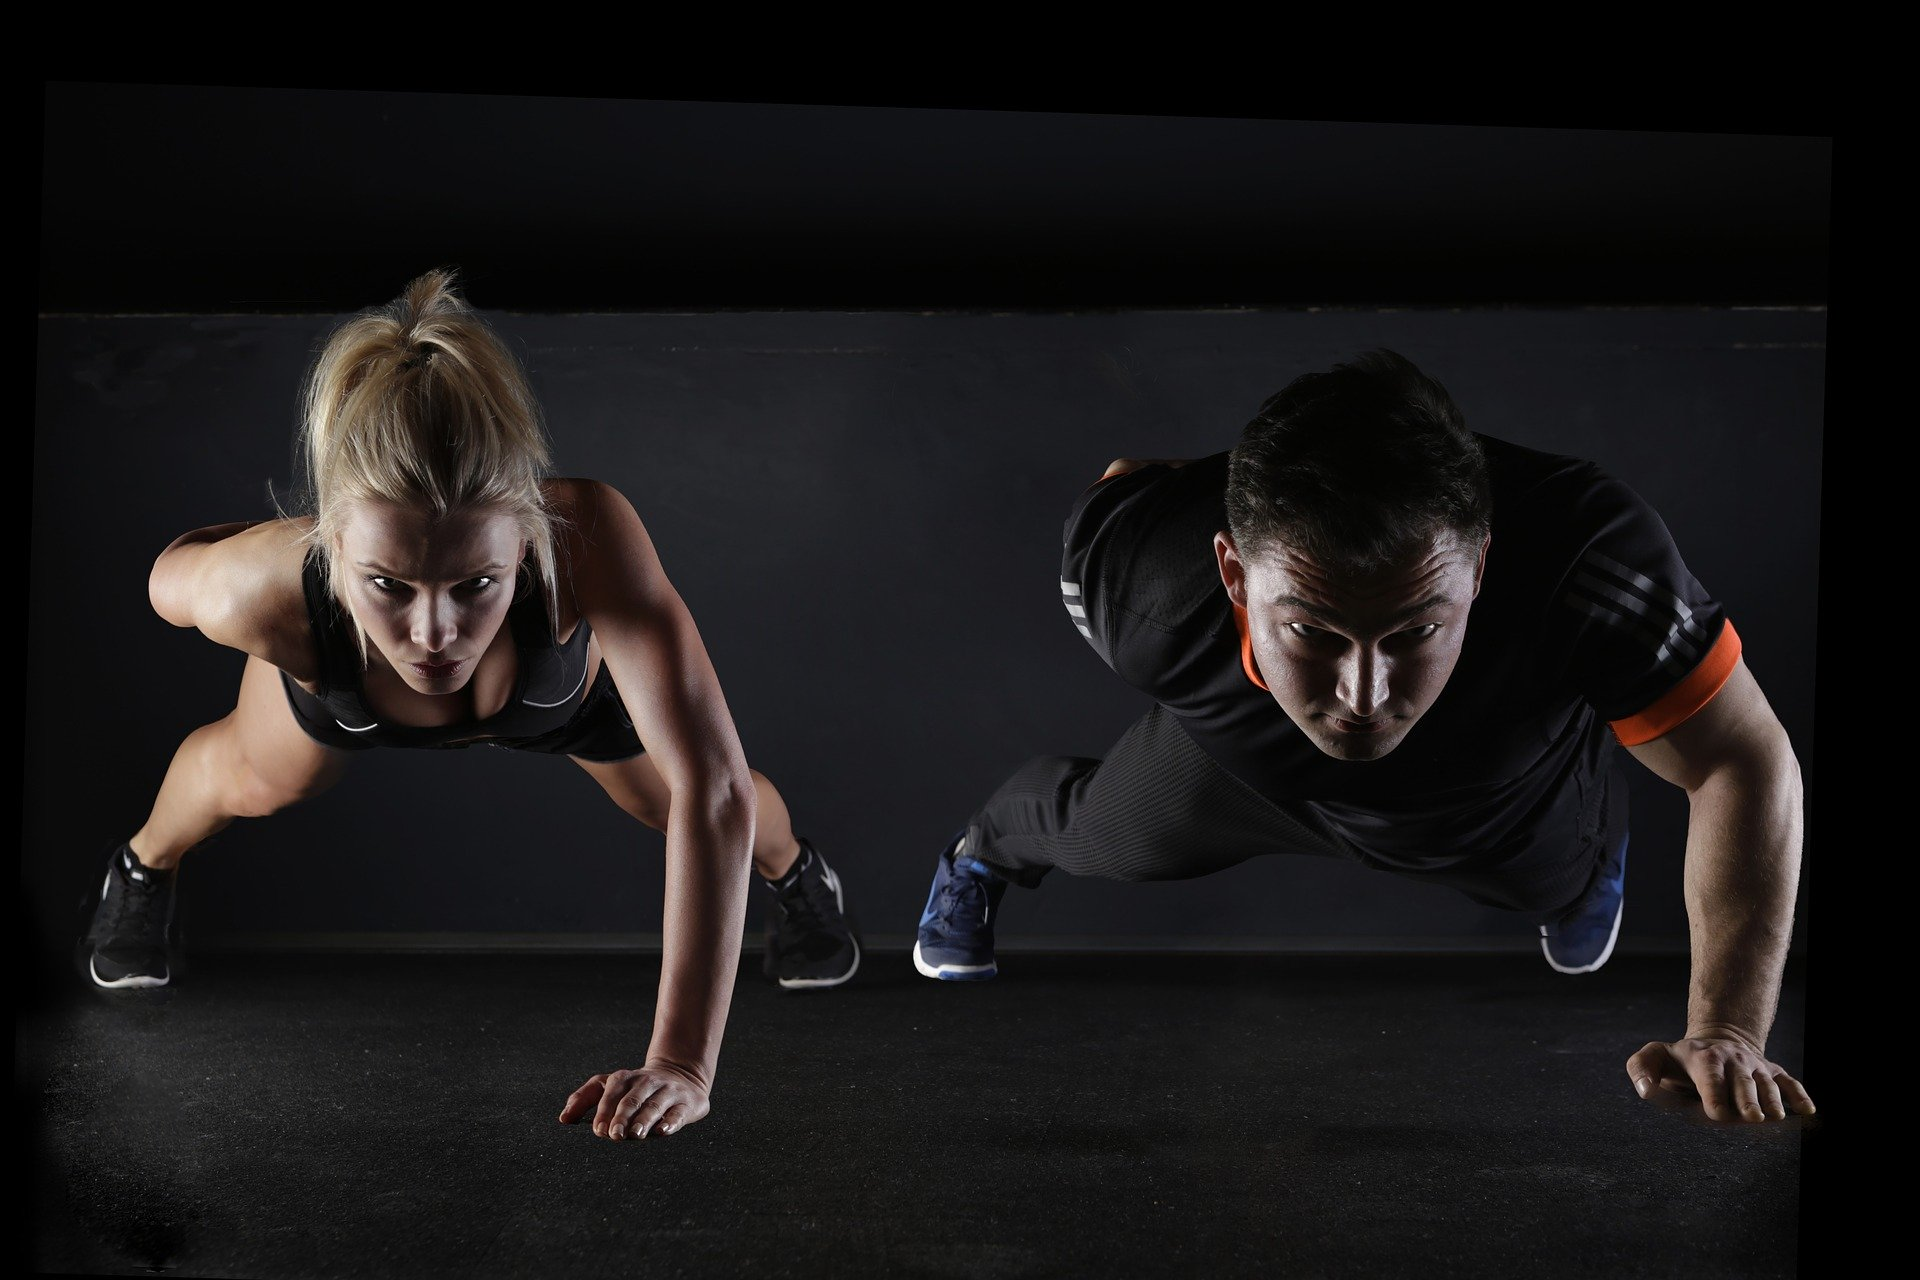 woman pushup workout for chest photo